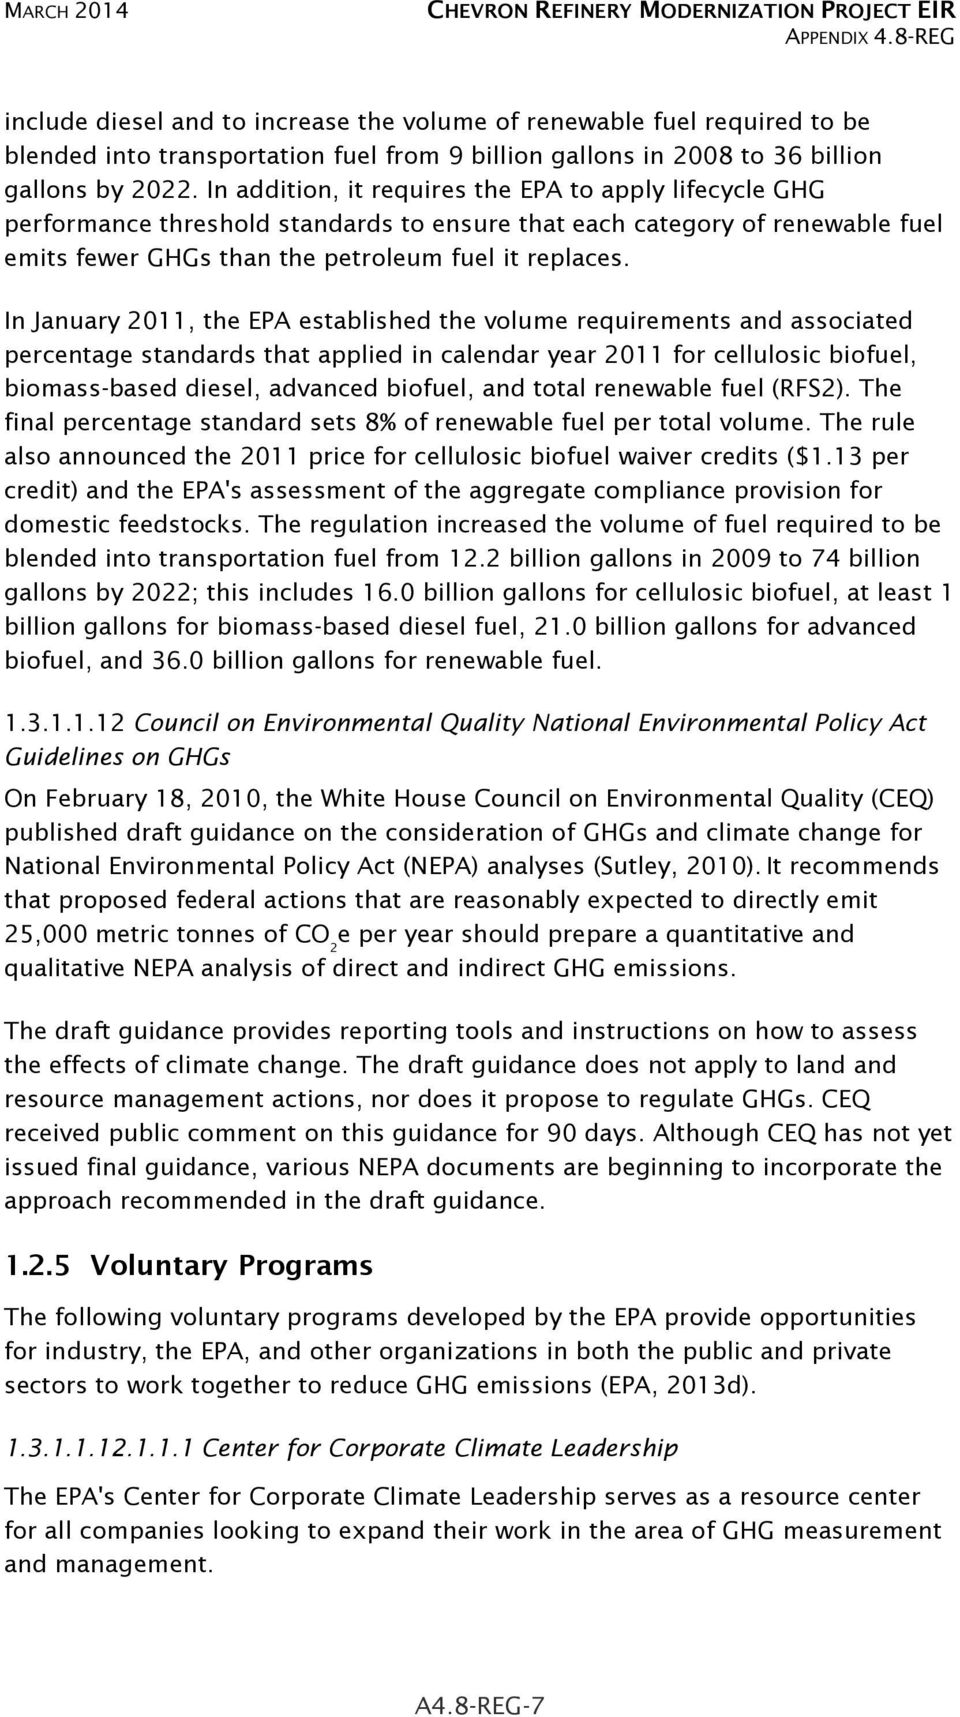 In addition, it requires the EPA to apply lifecycle GHG performance threshold standards to ensure that each category of renewable fuel emits fewer GHGs than the petroleum fuel it replaces.